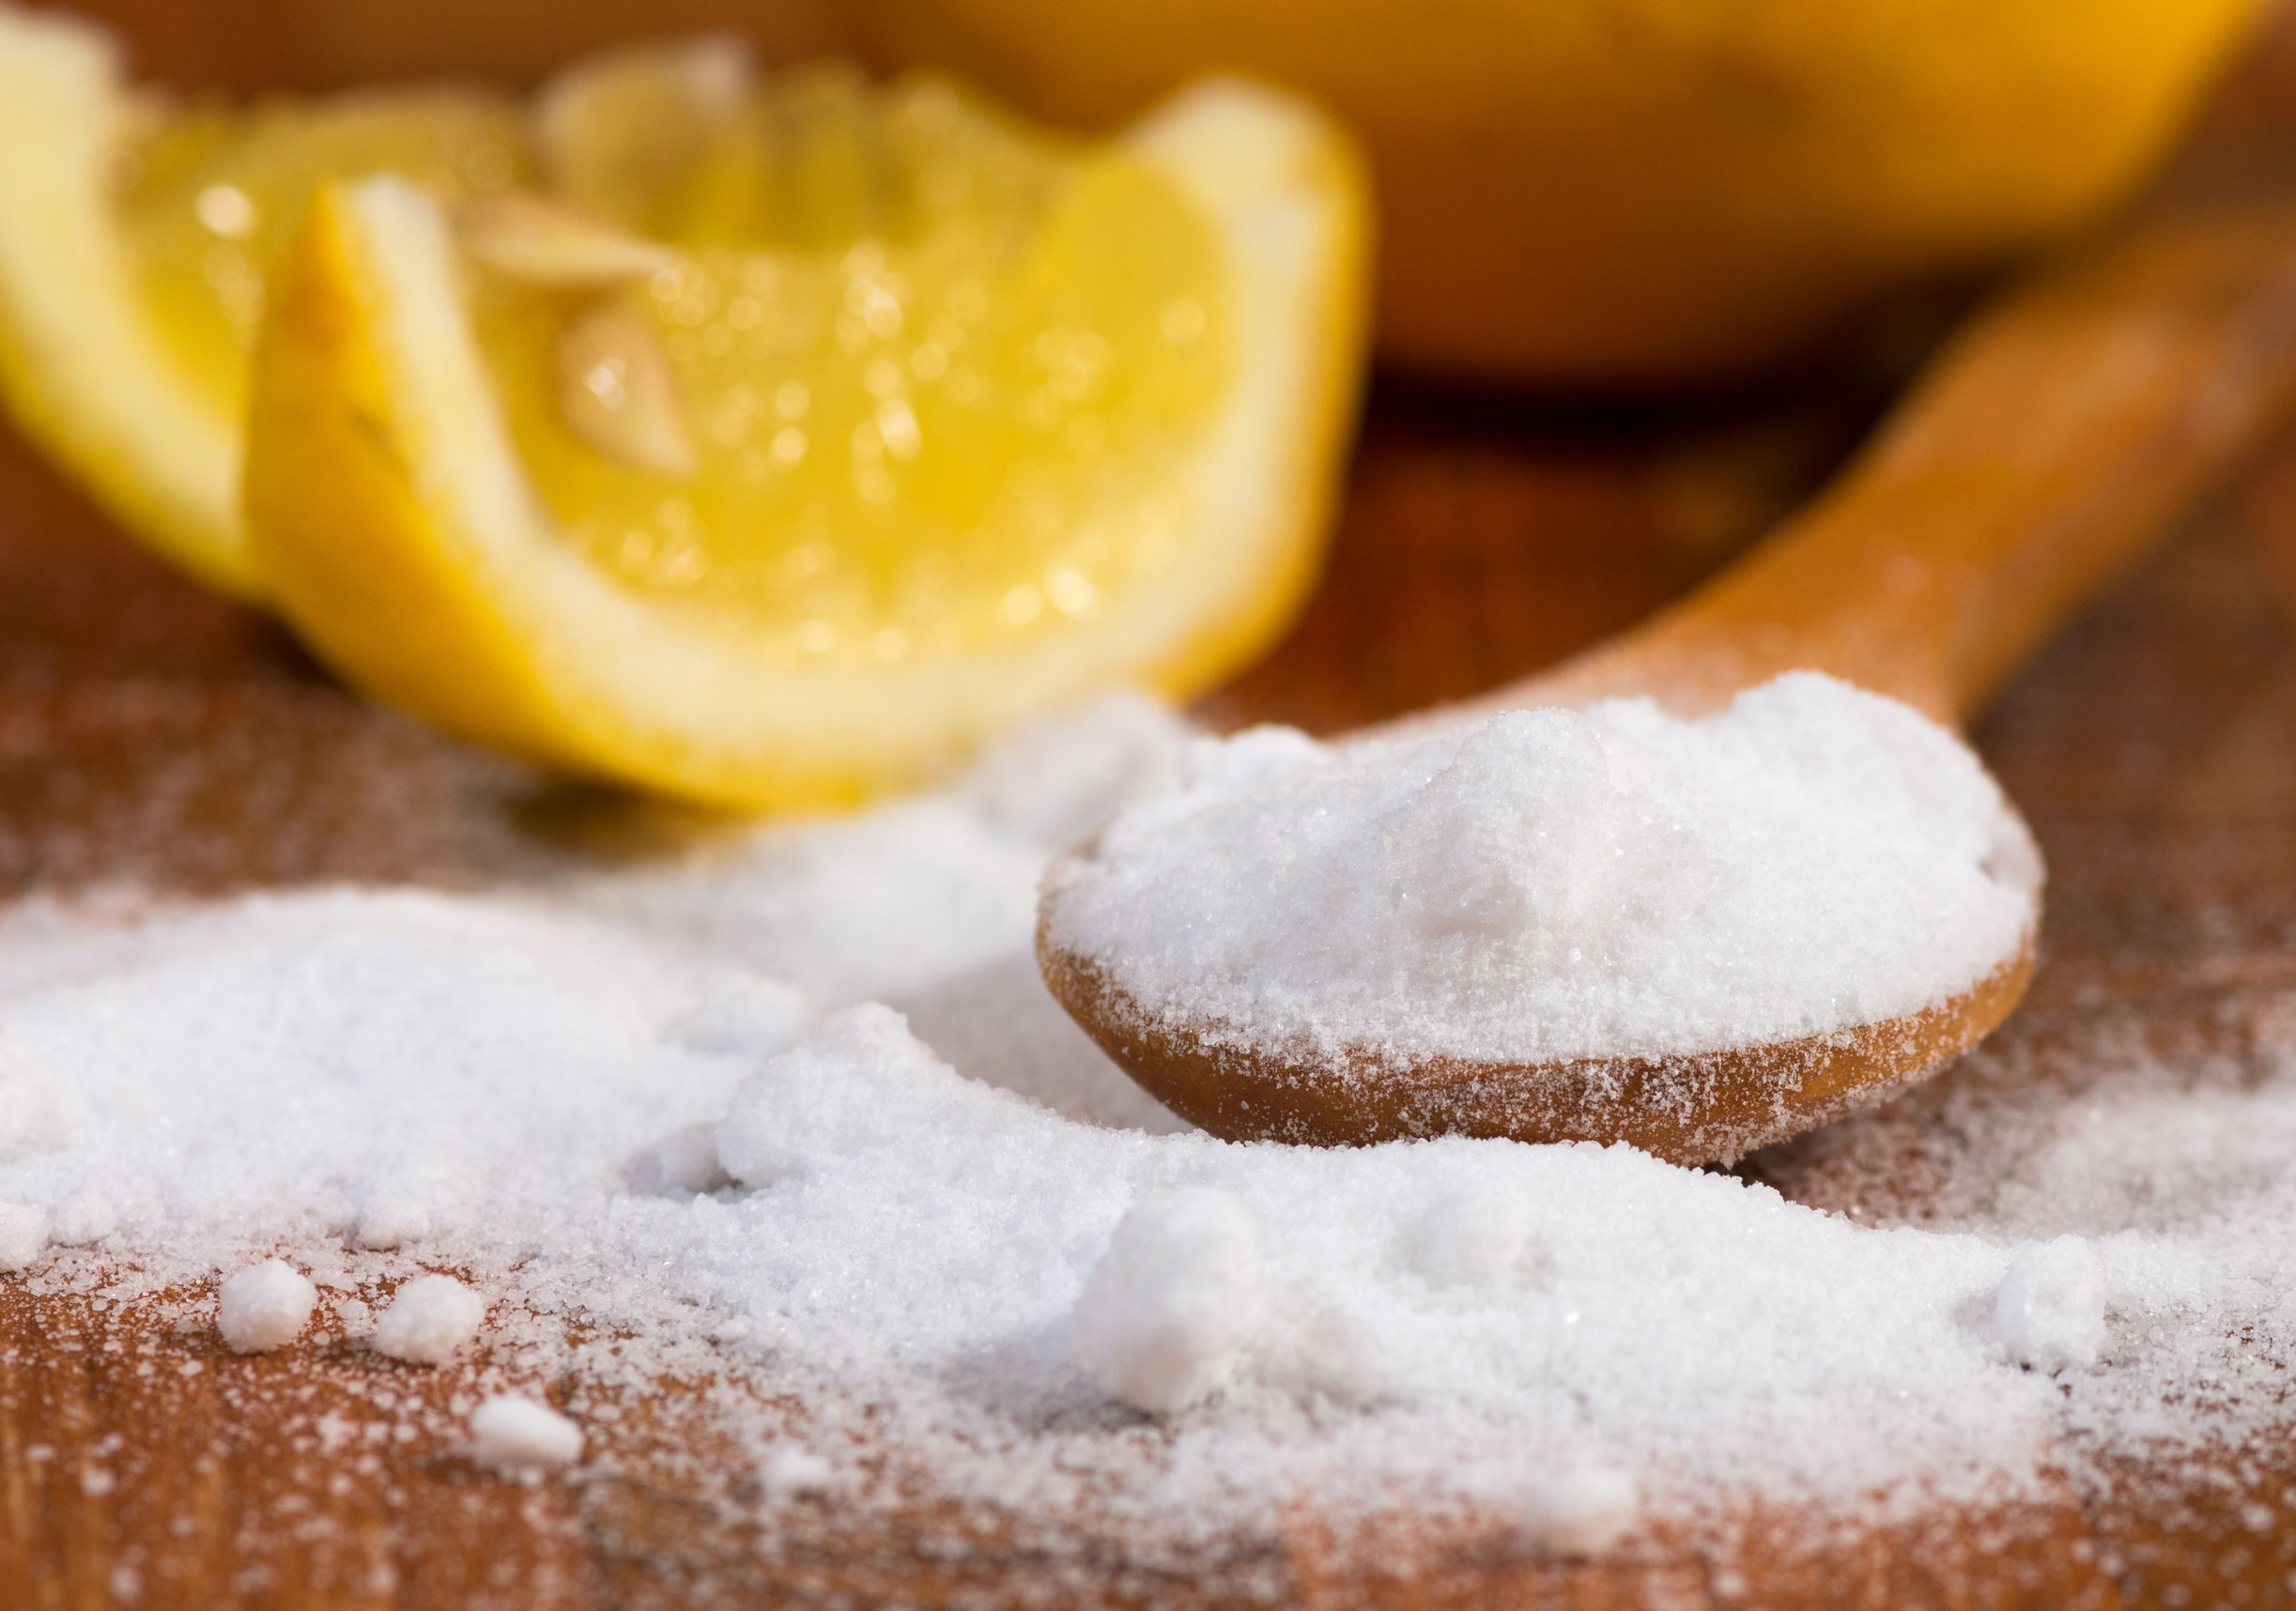 baking soda in a wooden spoon and lemon